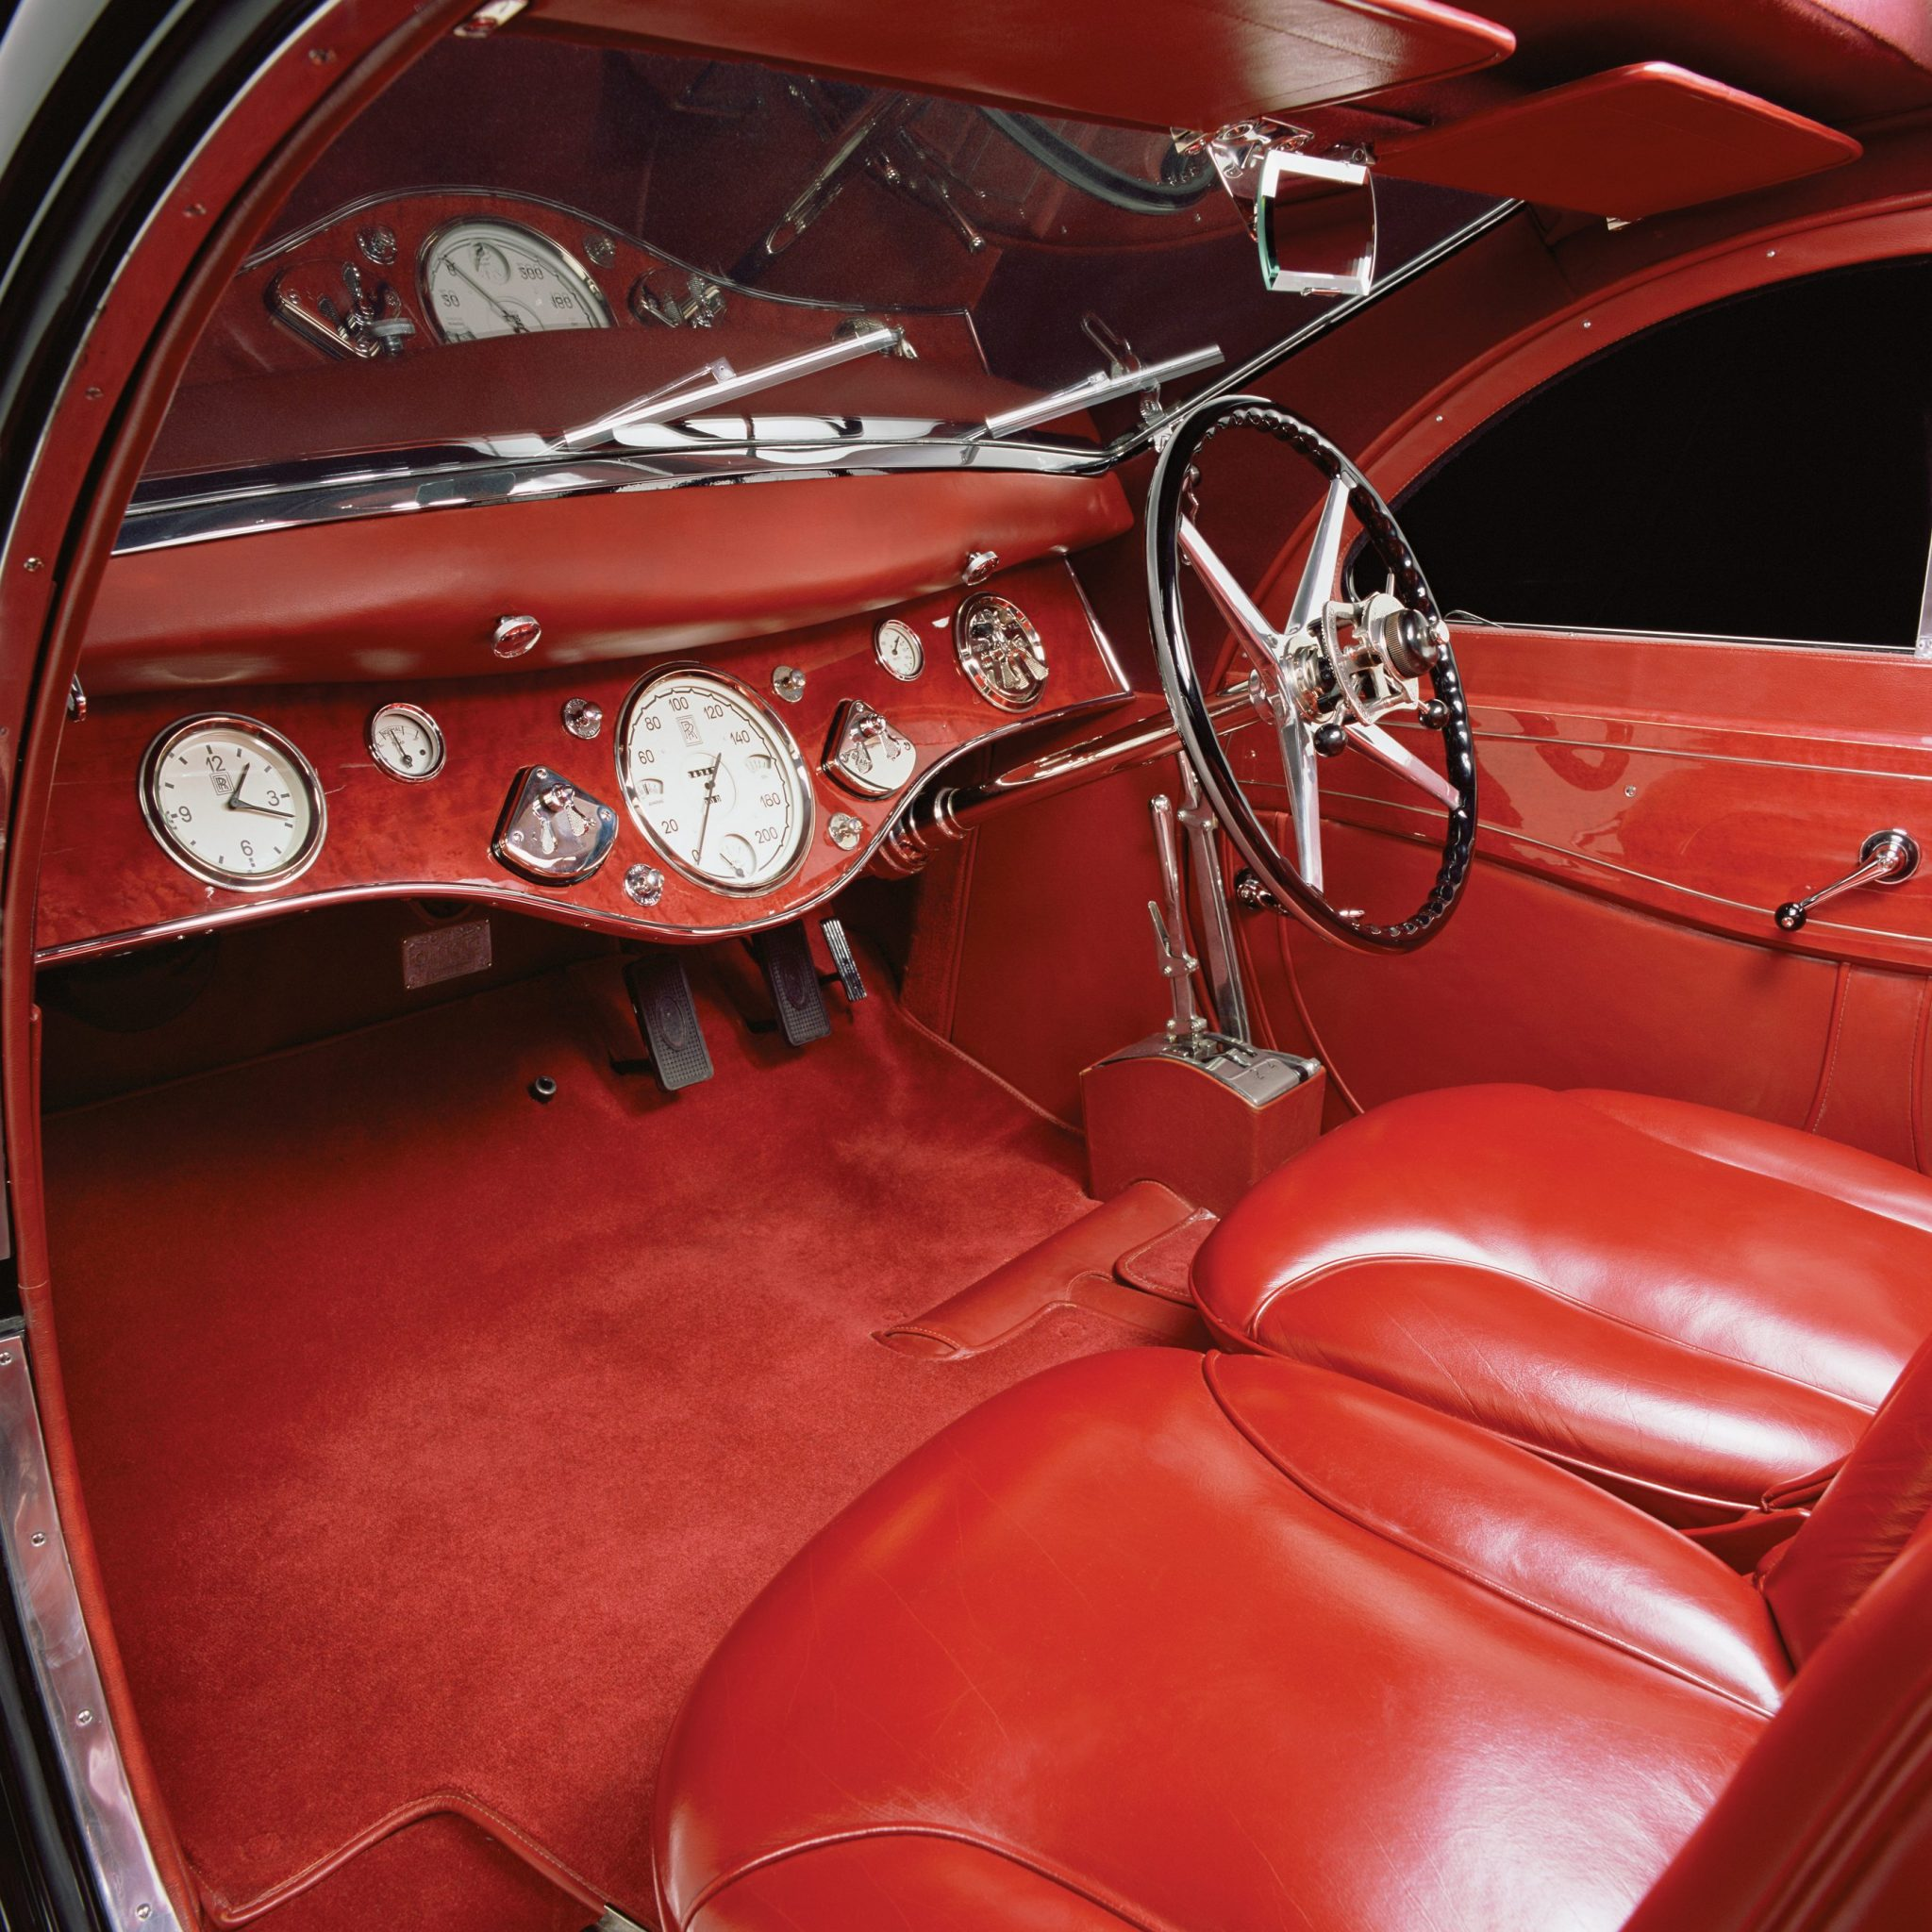 1925 Rolls-Royce Phantom 1 Jonckheere Coupe Interior